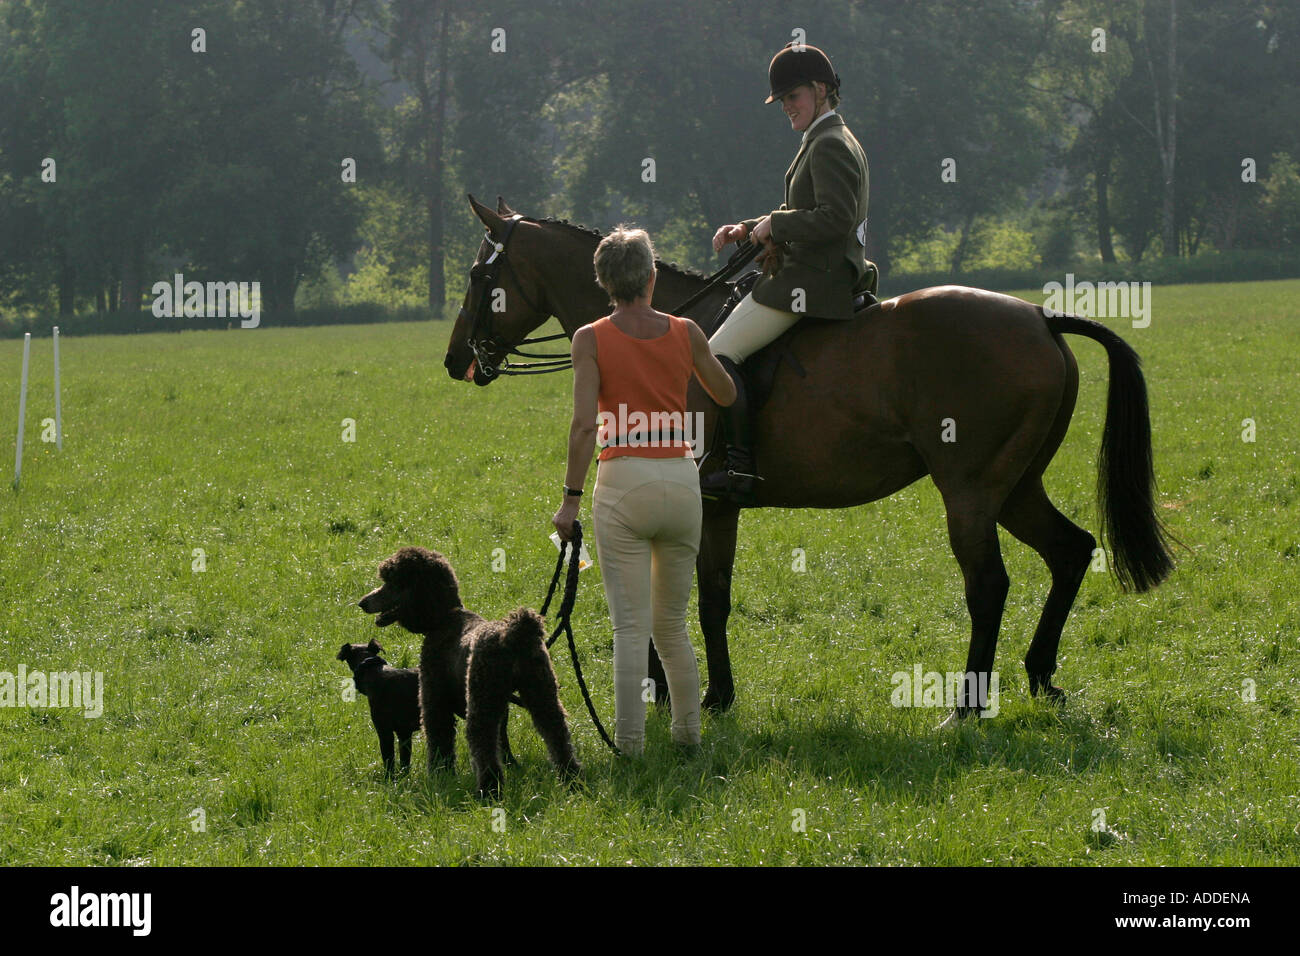 Participants talk at the end of the South Oxfordshire Riding Club's Open Show - Stock Image